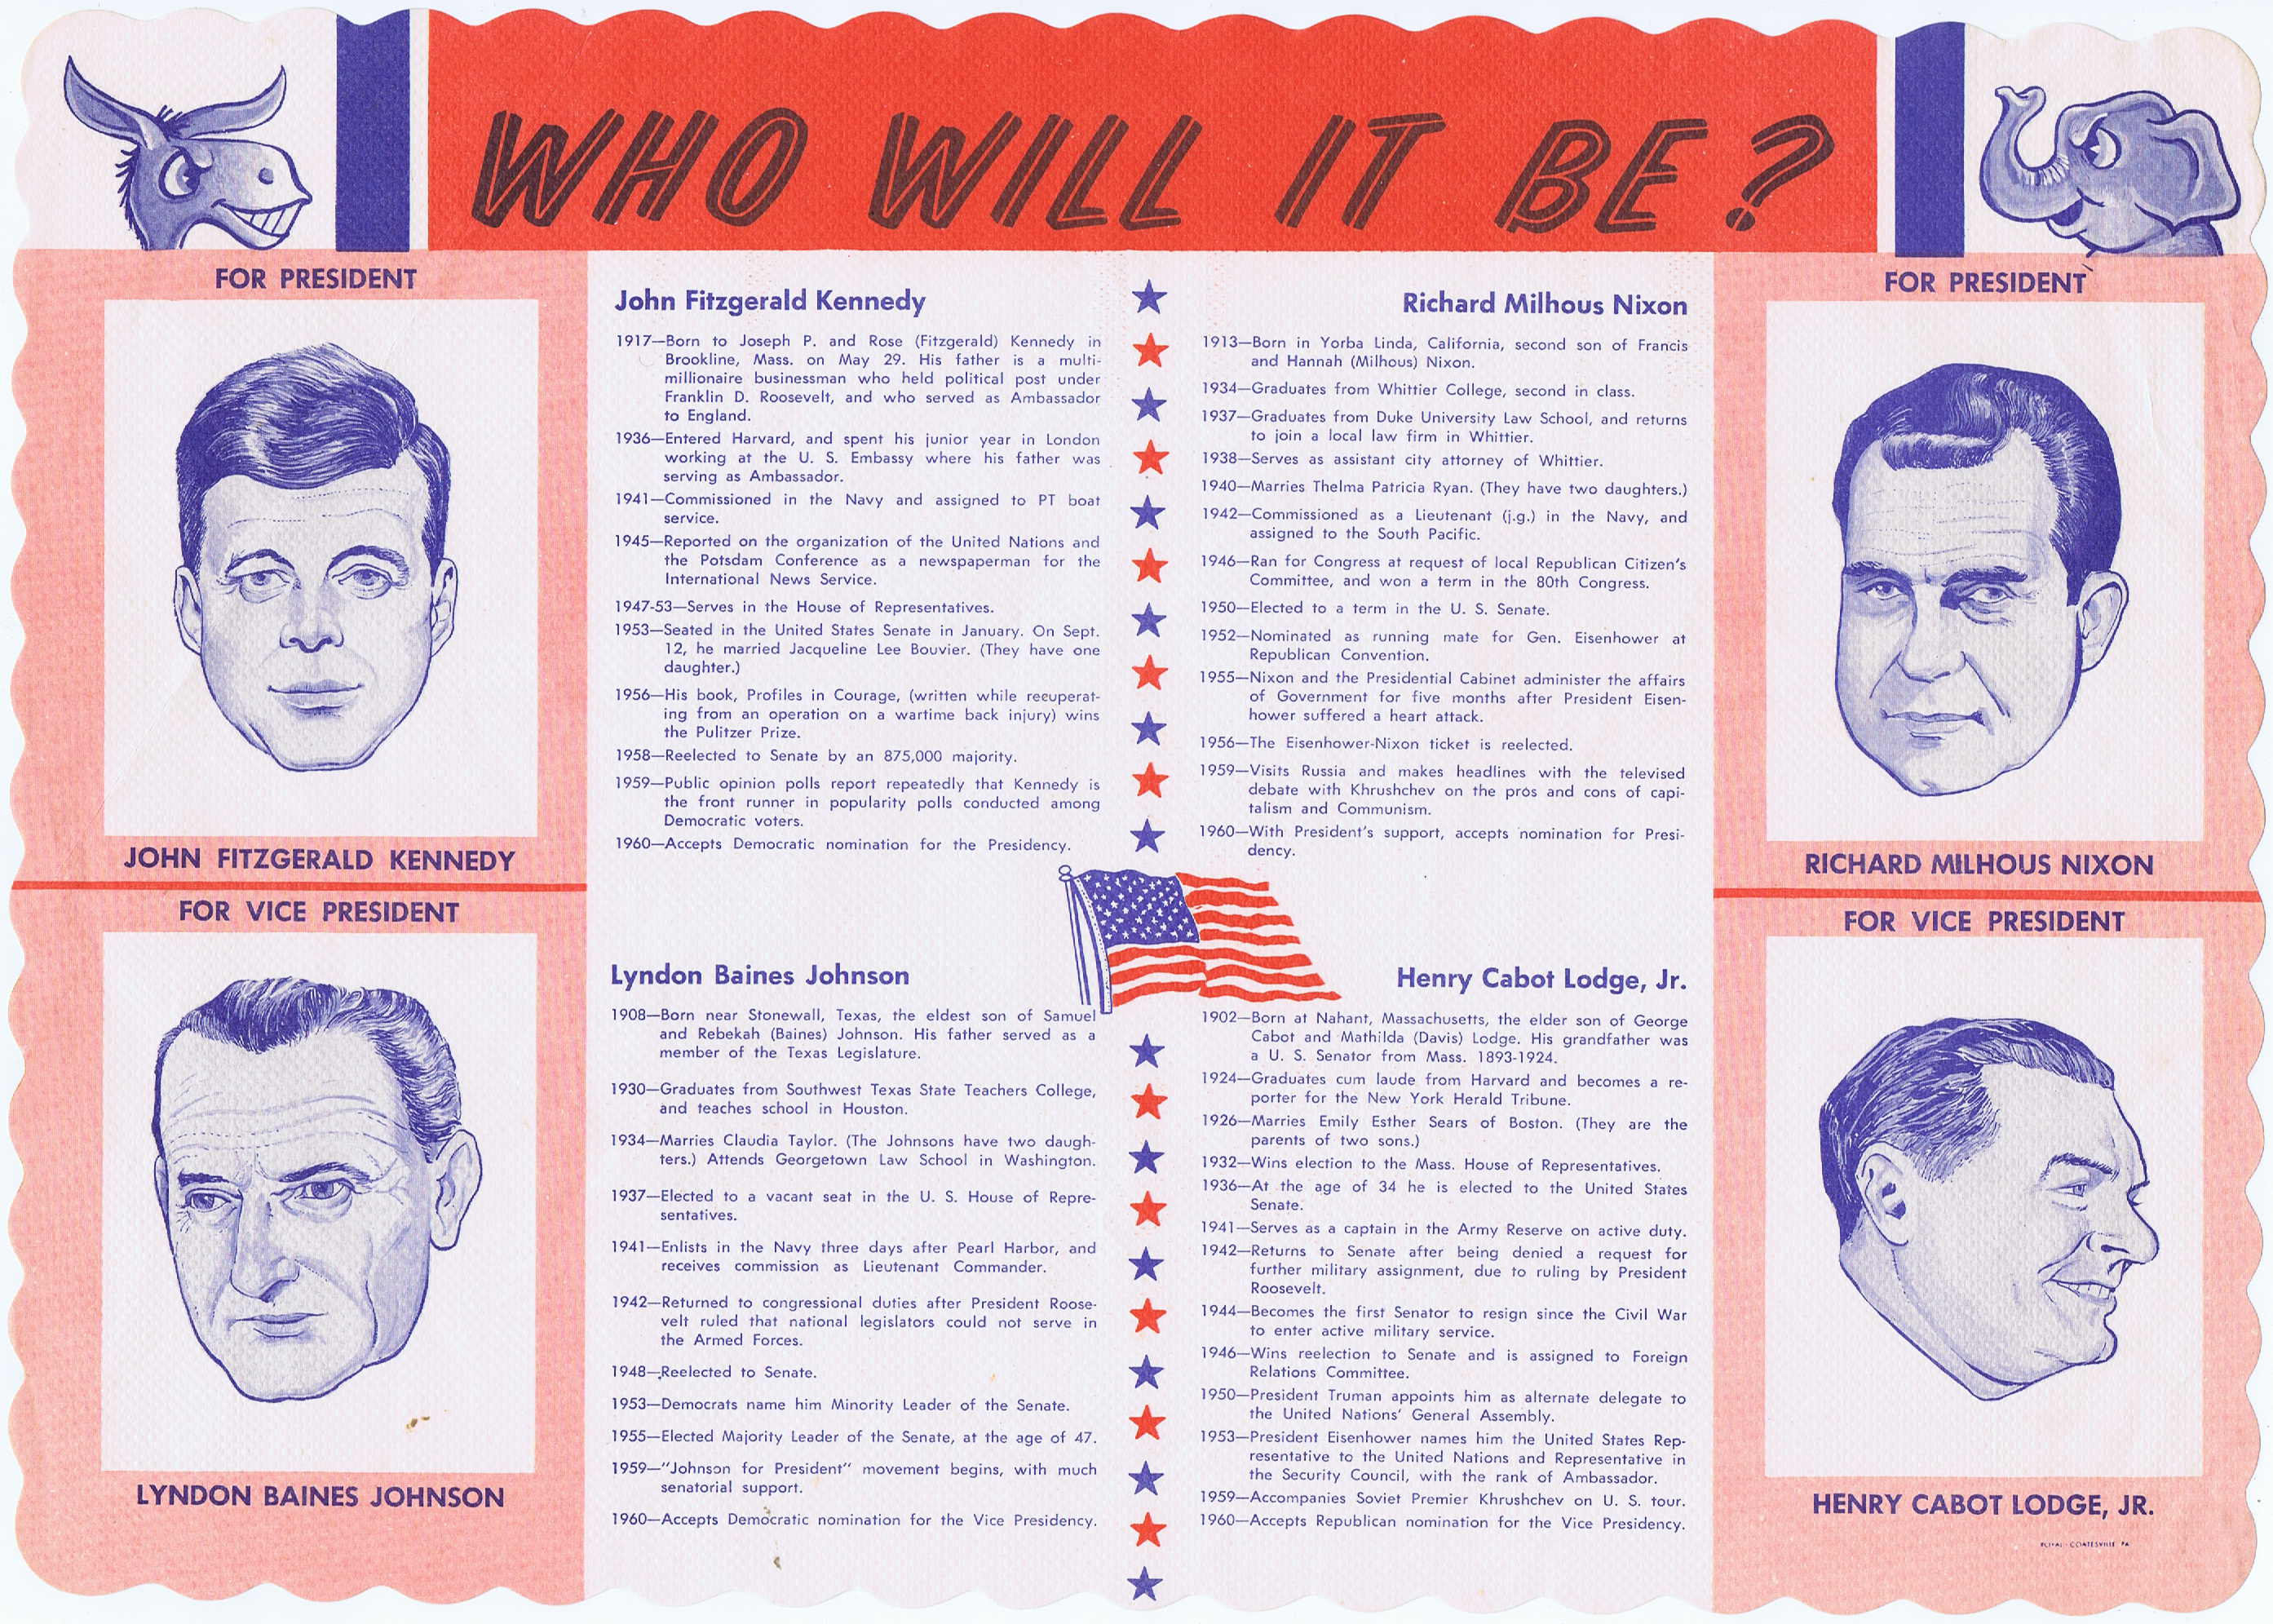 J824WHO WILL IT BE? ORIGINAL 1960 DINER PLACEMAT SHOWING JFK AND NIXON WITH THEIR VICE PRESIDENTS